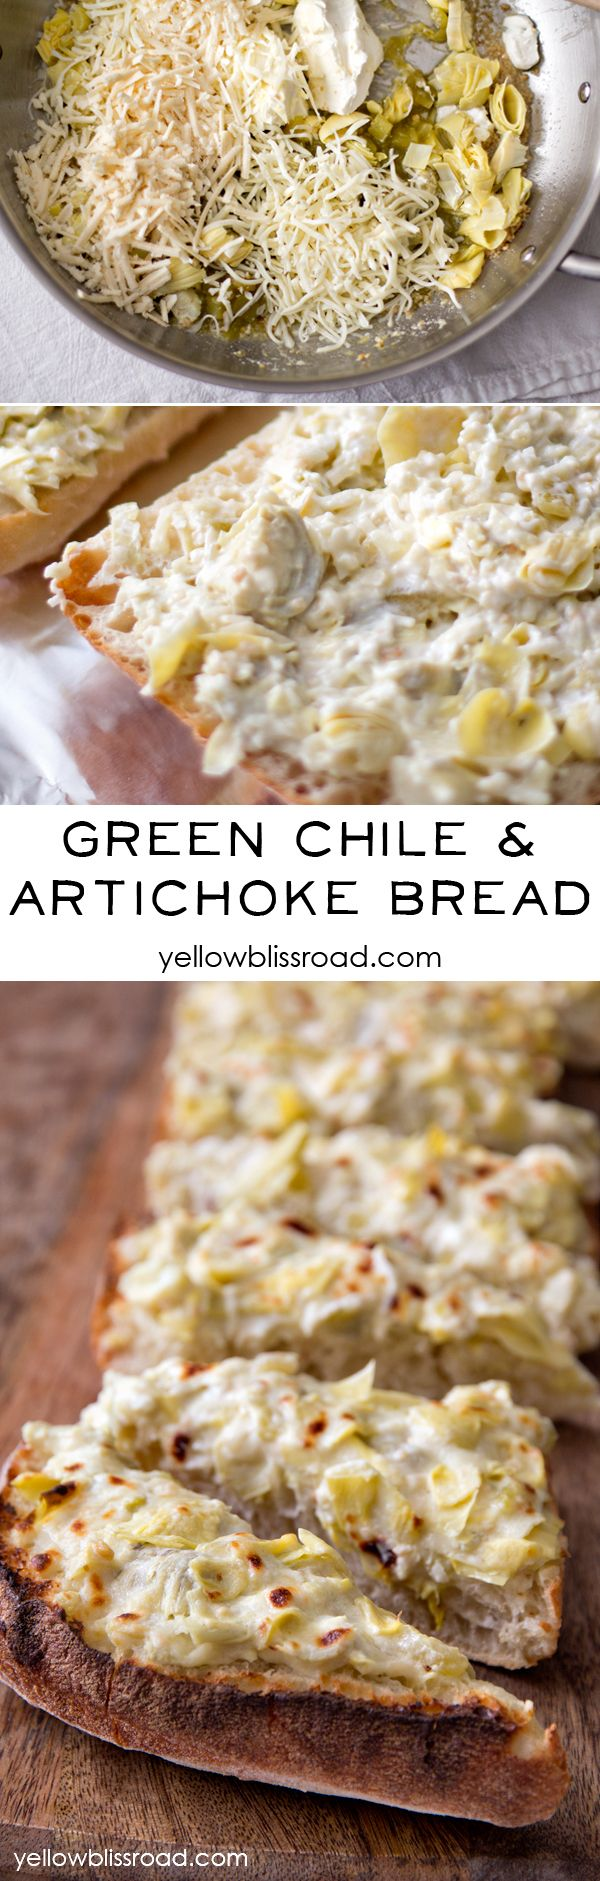 Green Chile & Artichoke Bread - good but very rich!